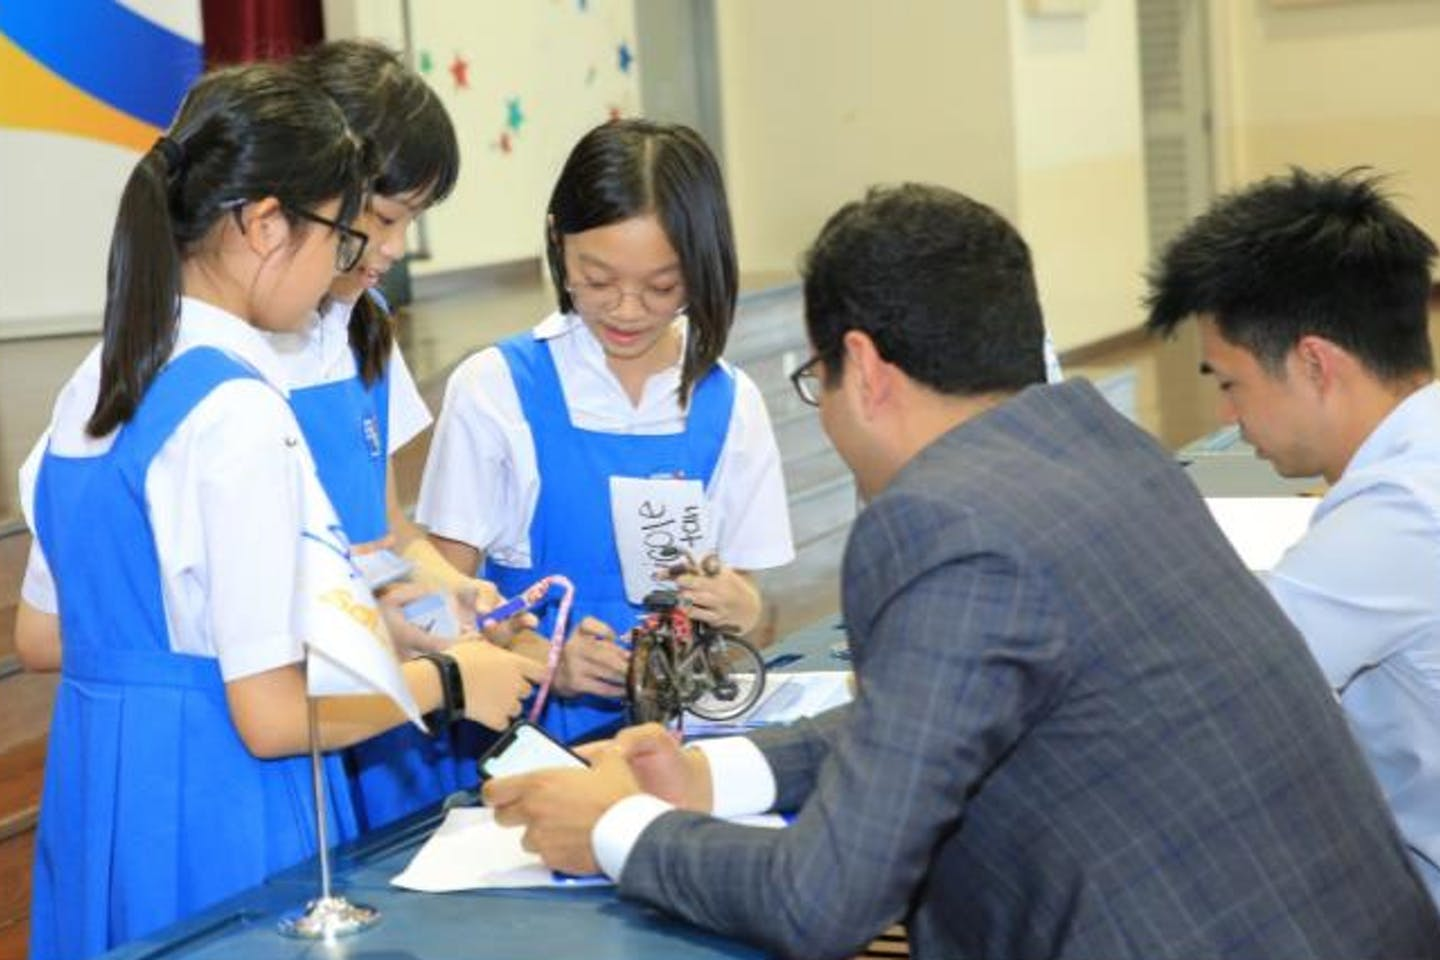 SABIC holds the 2019 'Lights of Our Future' competition in Singapore, encouraging youths to contemplate future sustainability